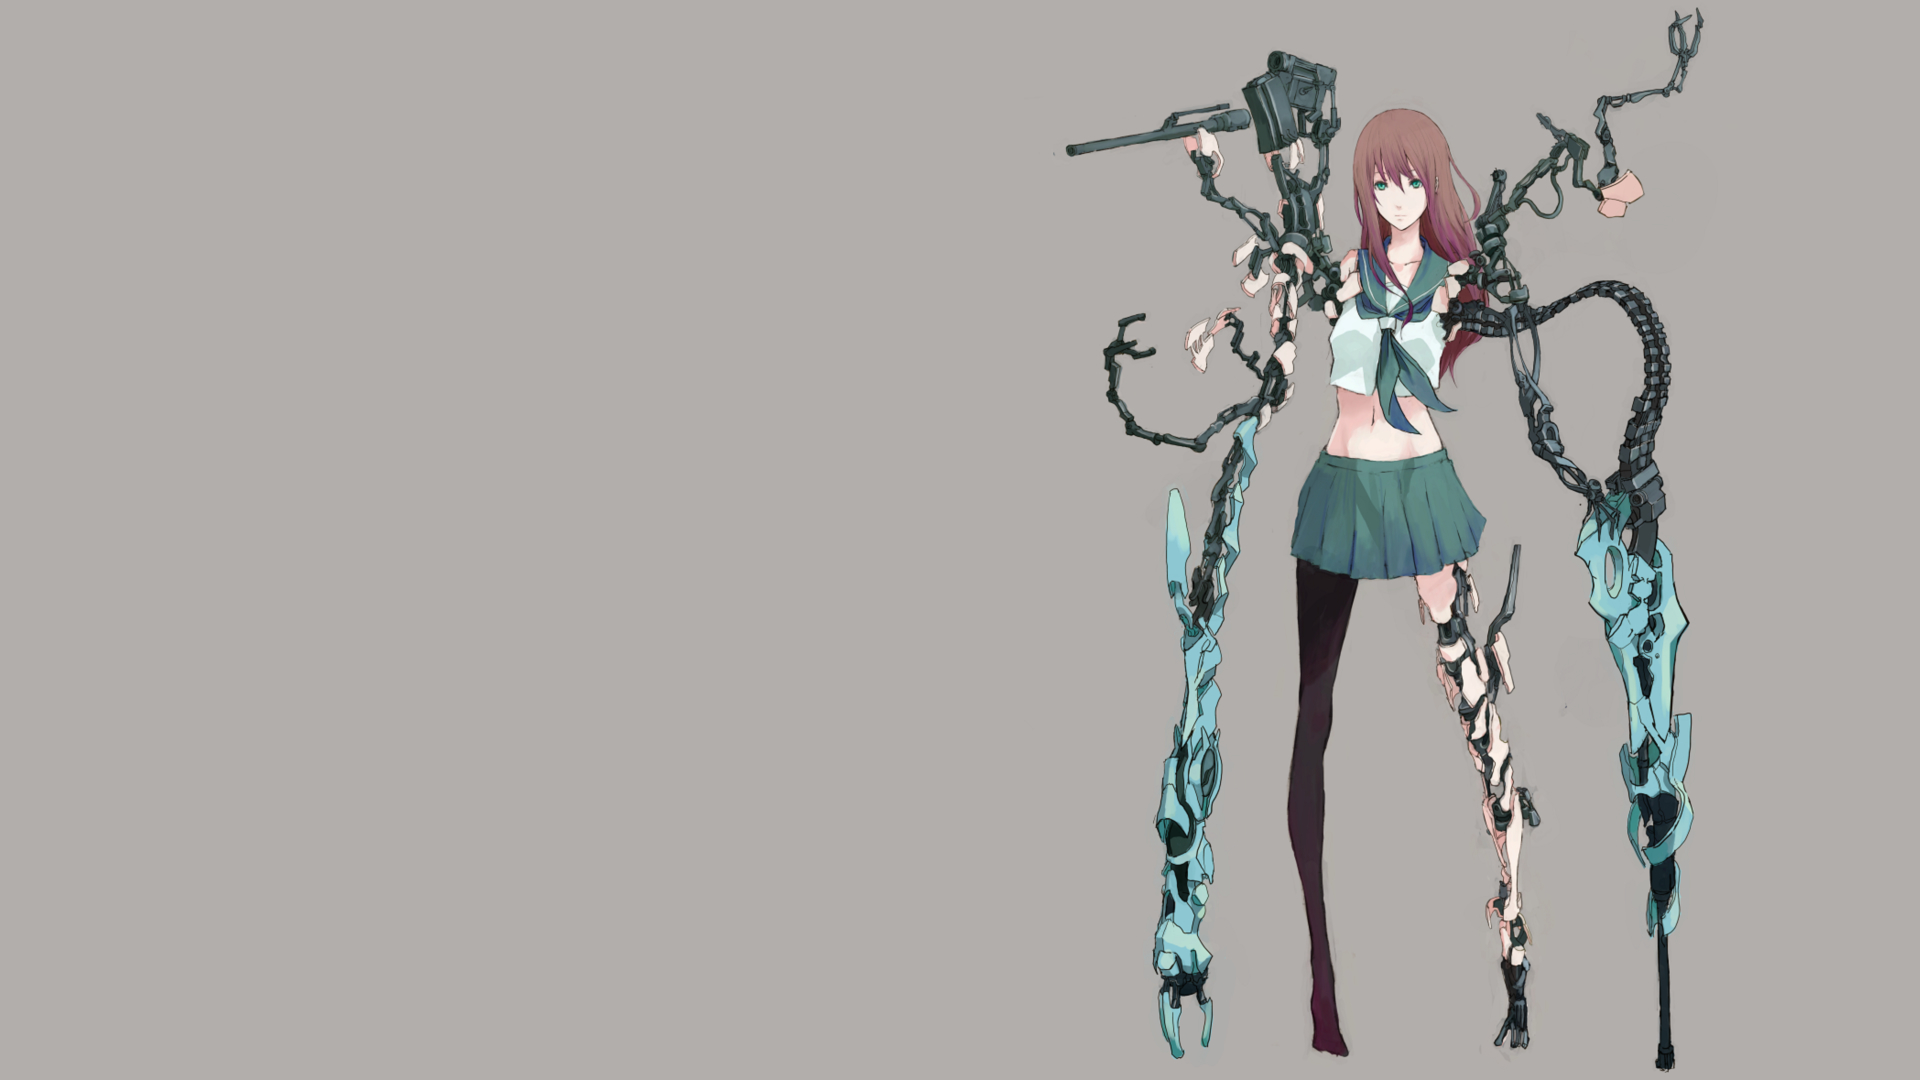 Anime girls cyborgs school HD Wallpaper